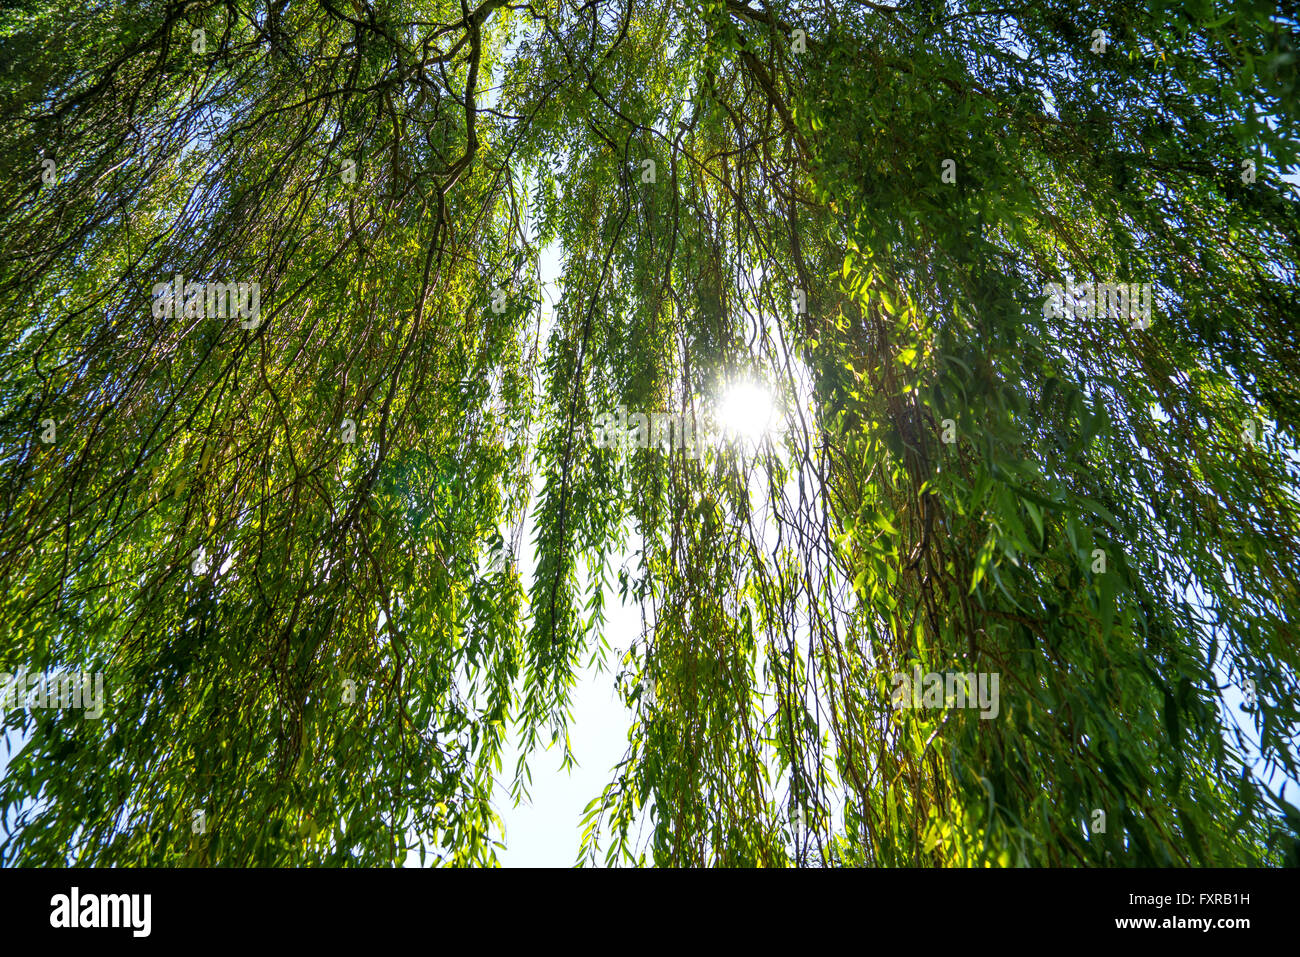 Sun shines through a willow tree - Stock Image